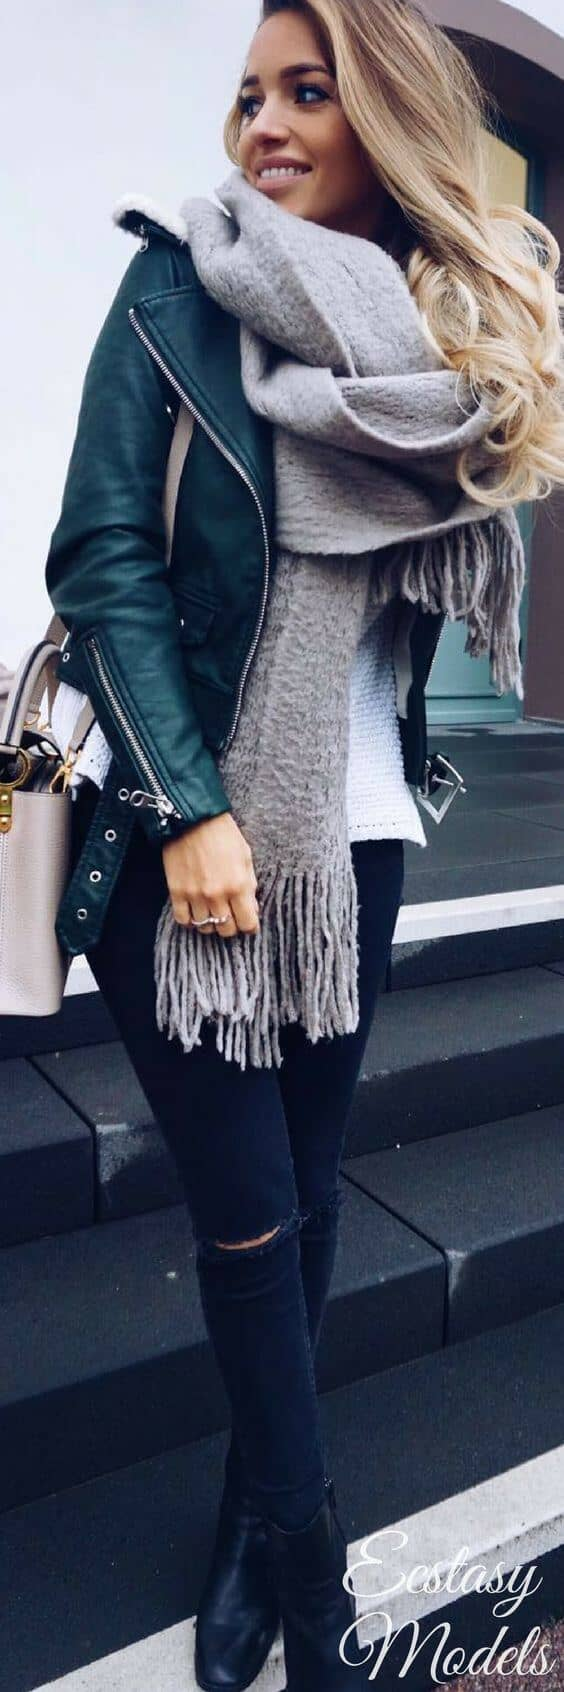 Gray Scarf With Fringe, Moto Jacket, Denim